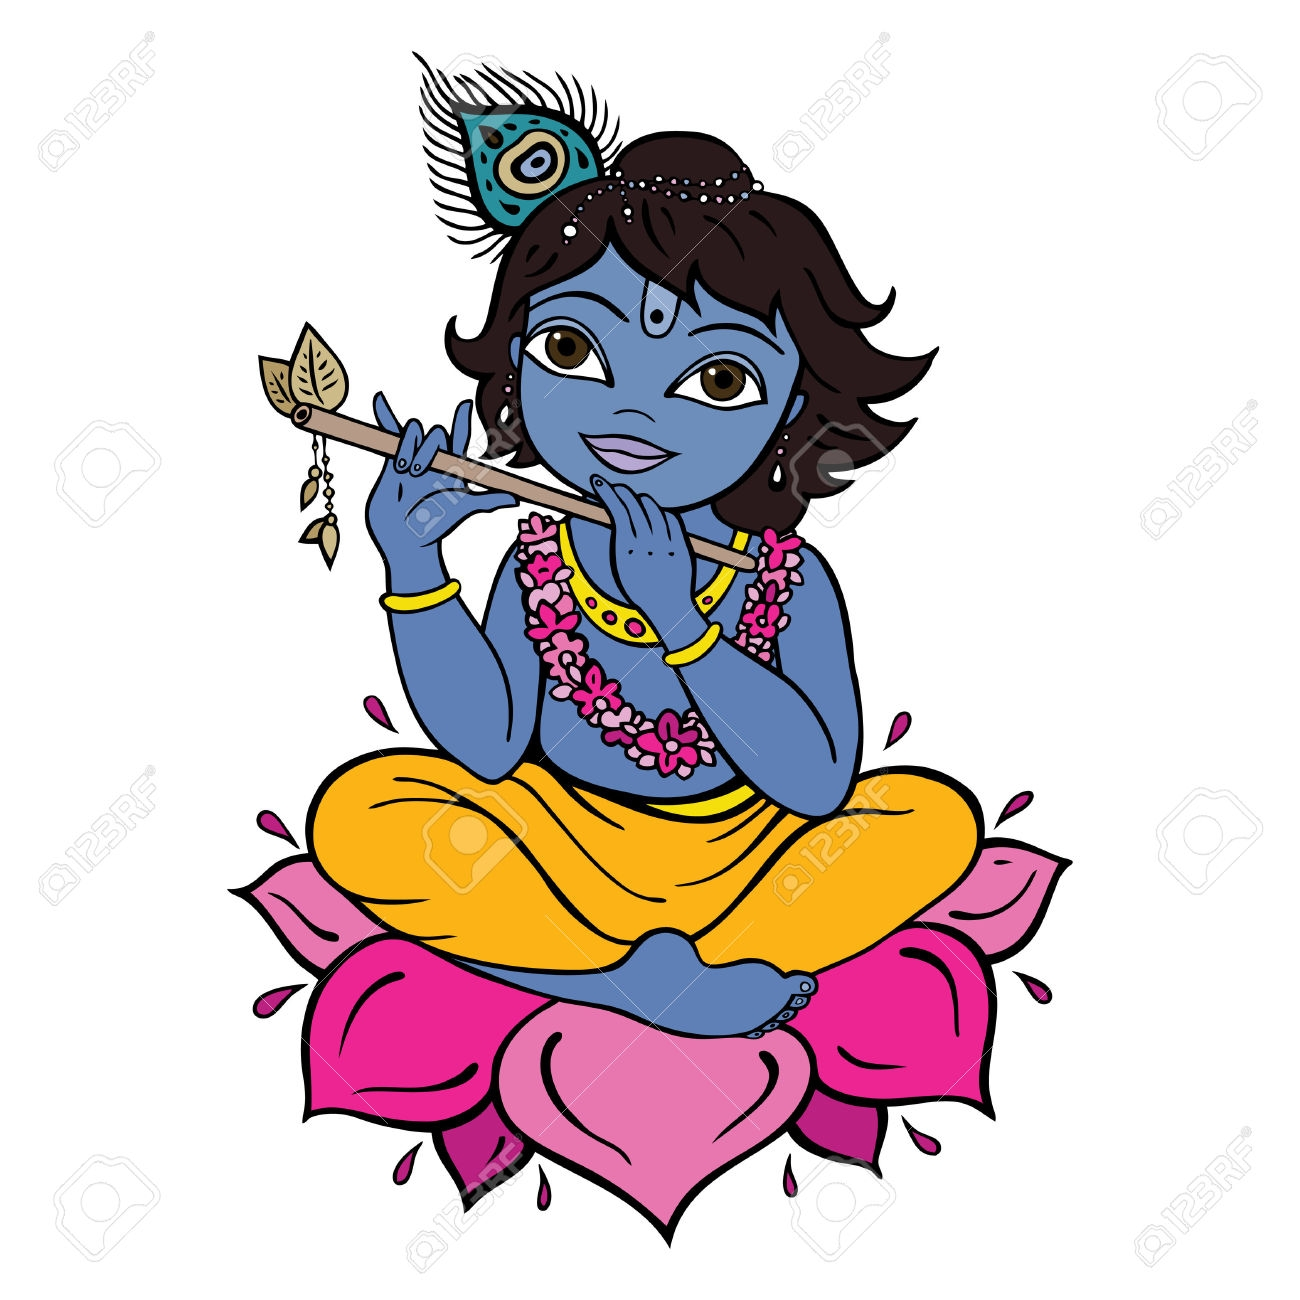 Flute clipart lord krishna. Collection of free download